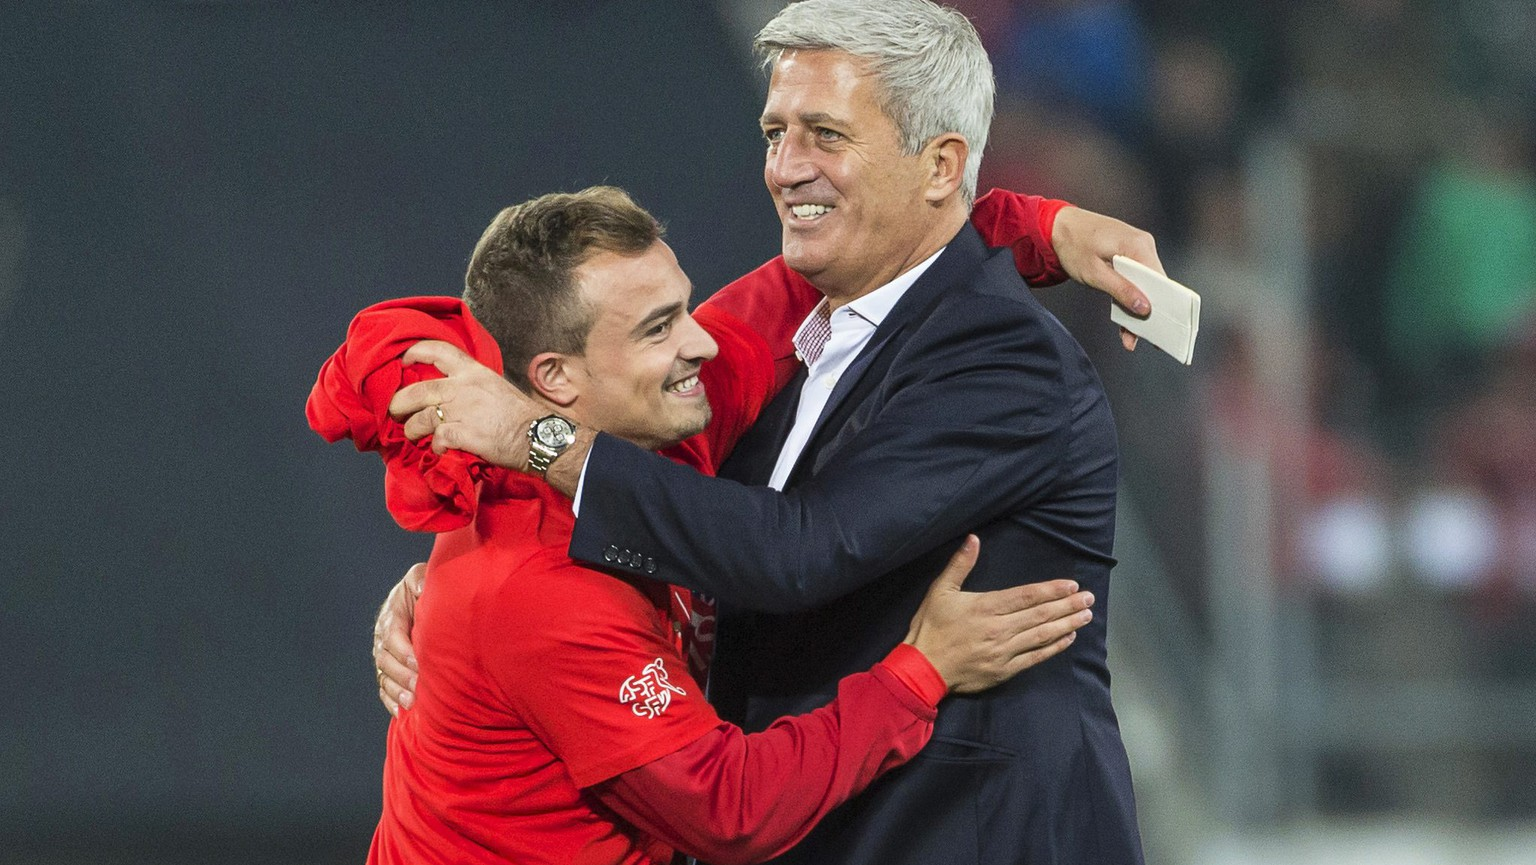 epa04971098 Swiss head coach Vladimir Petkovic (R) celebrates with Xherdan Shaqiri (L) after the UEFA EURO 2016 qualifying group E soccer match between Switzerland and San Marino in St. Gallen, Switzerland, 09 October 2015. Switzerland won 7-0.  EPA/ALESSANDRO DELLA VALLE